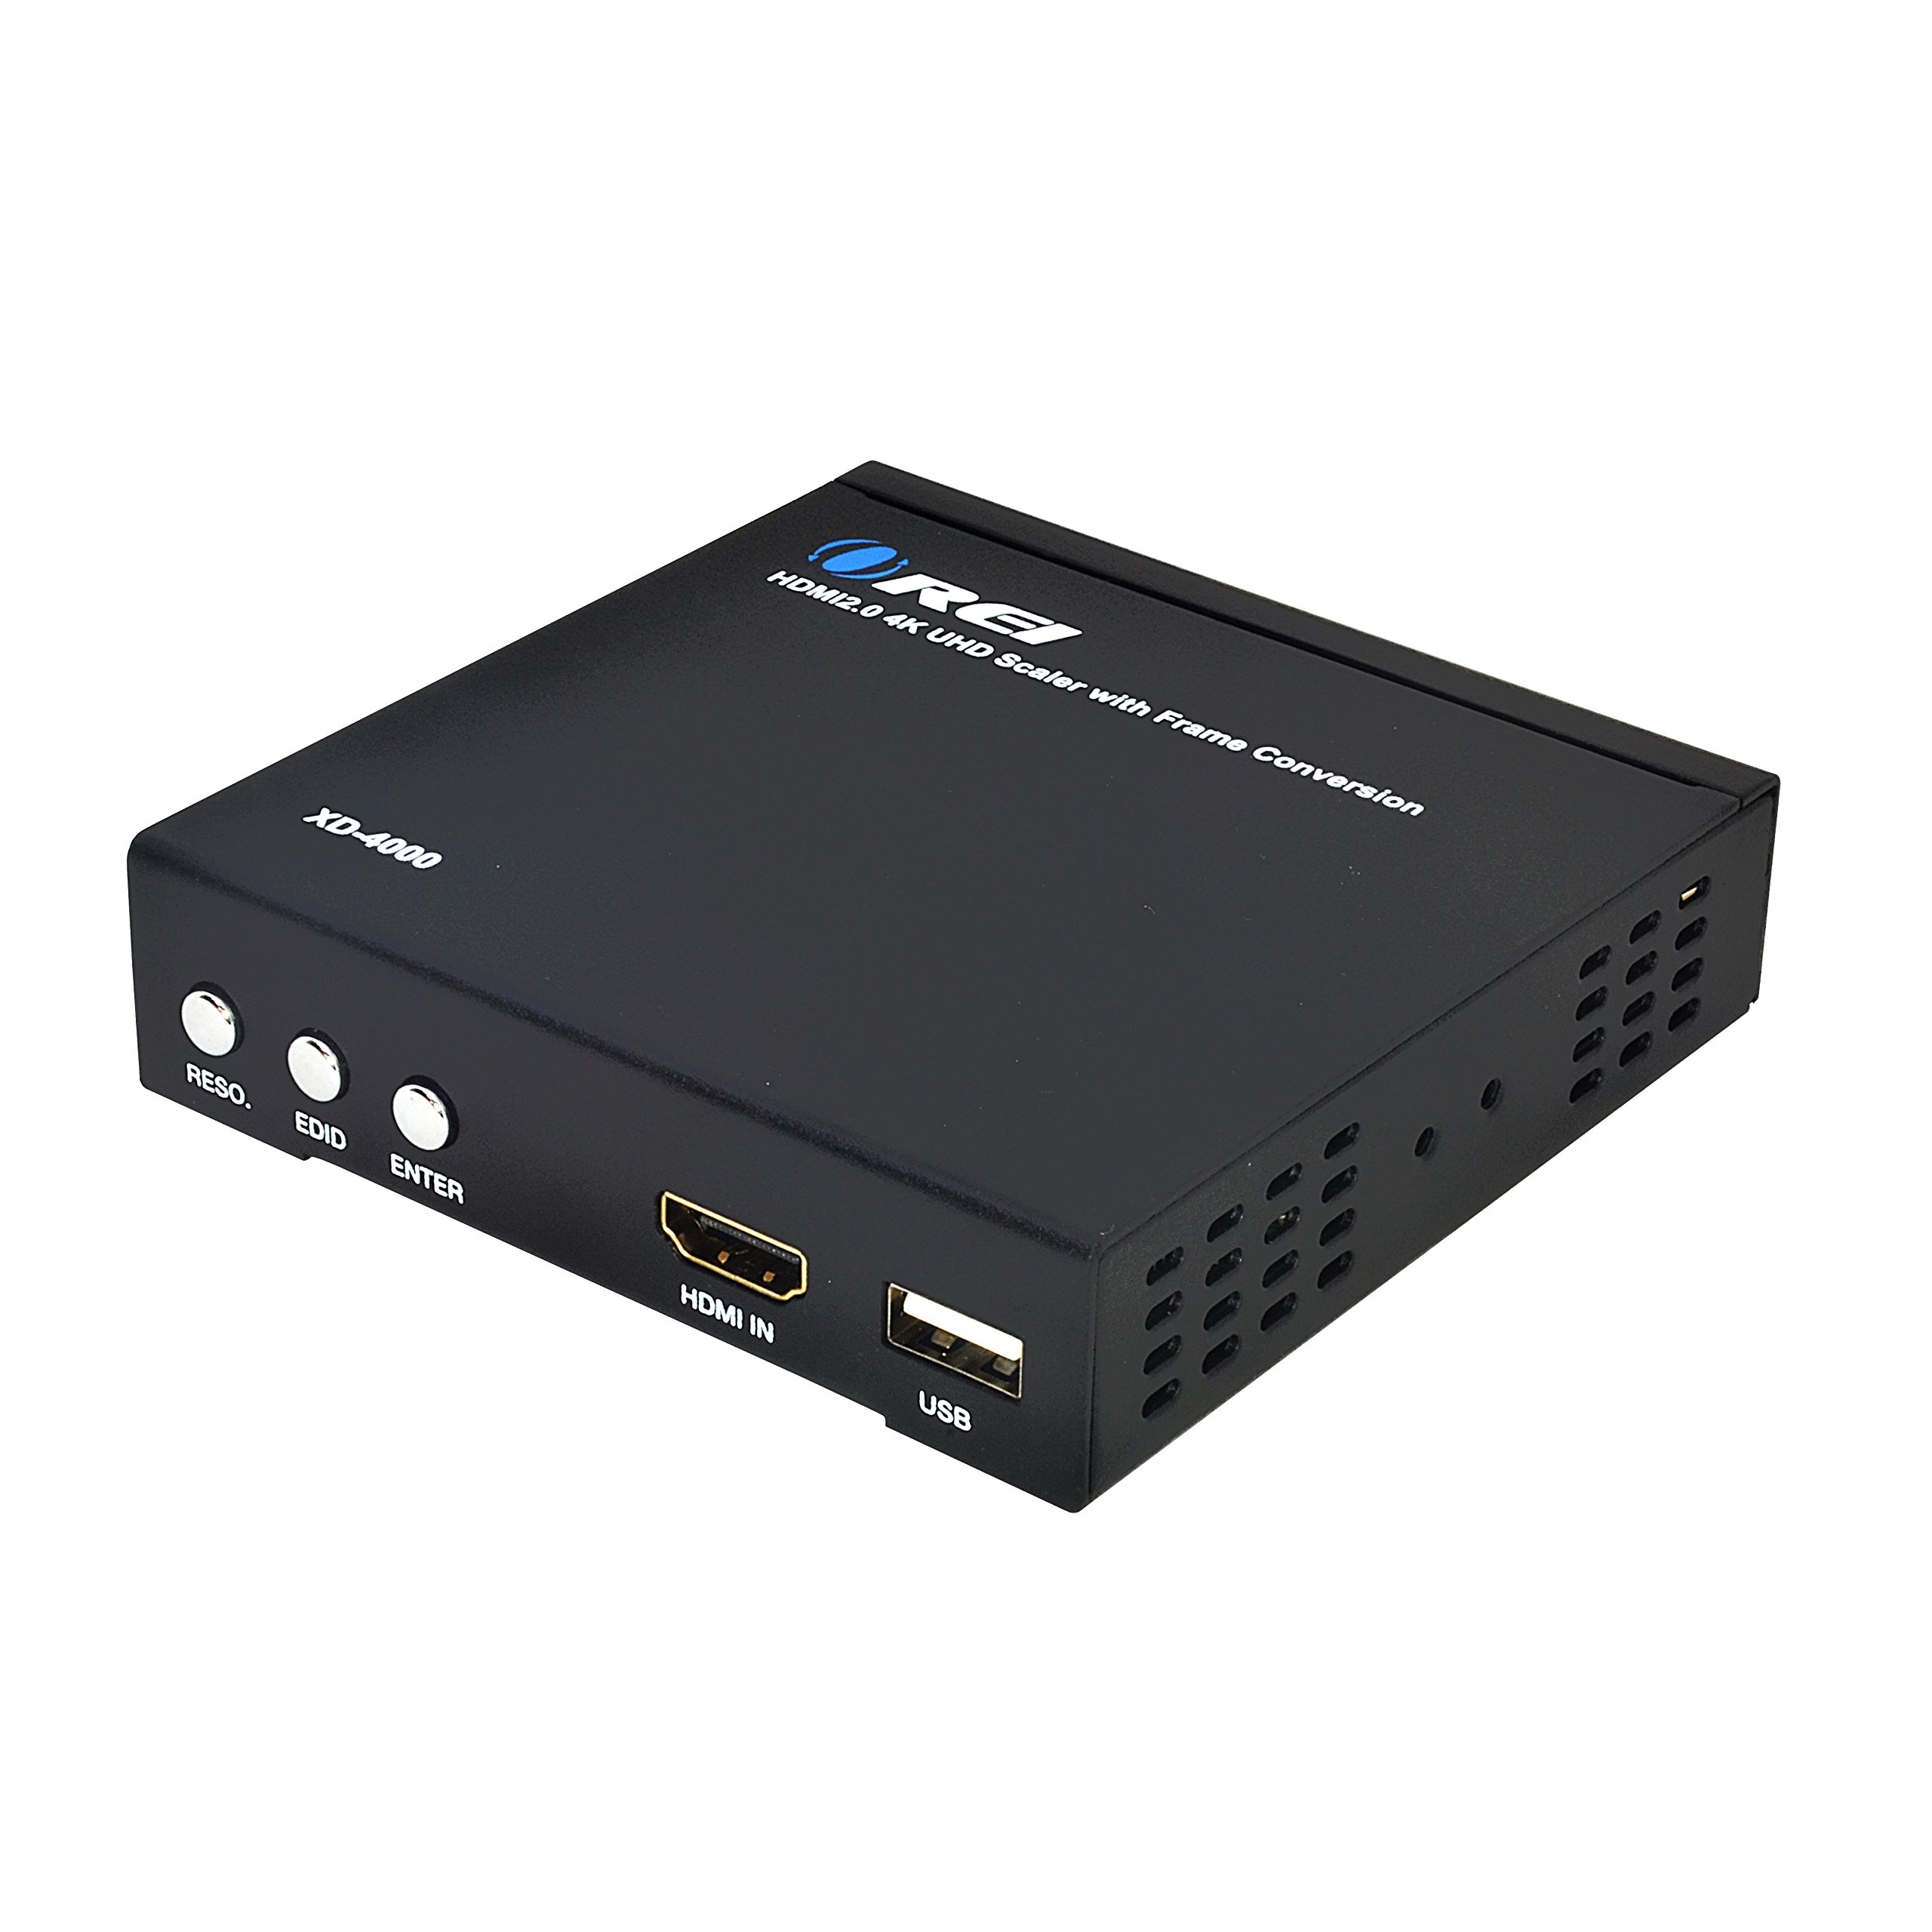 Orei XD-4000 Premium 4K@60Hz HDMI PAL to NTSC Video Converter Up Down Scaler Resolution Selector